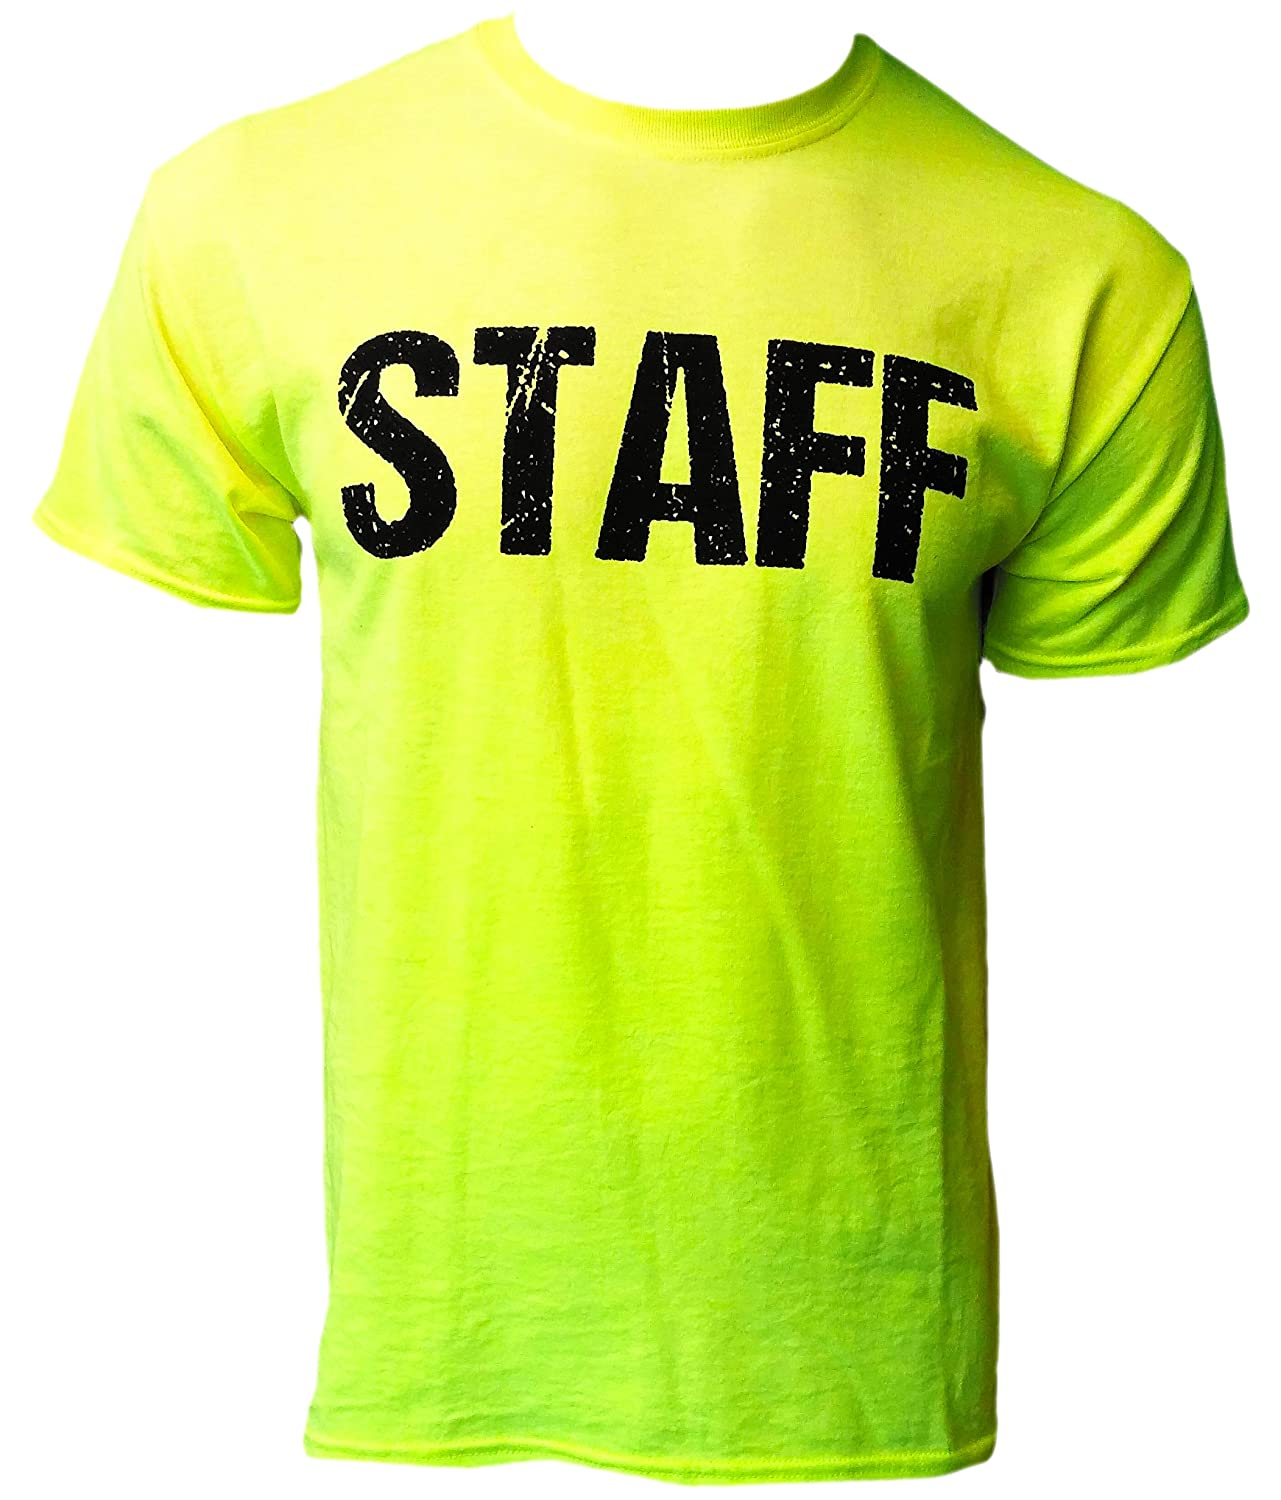 Neon staff t shirt front back print mens event shirt for T shirt printing stonecrest mall